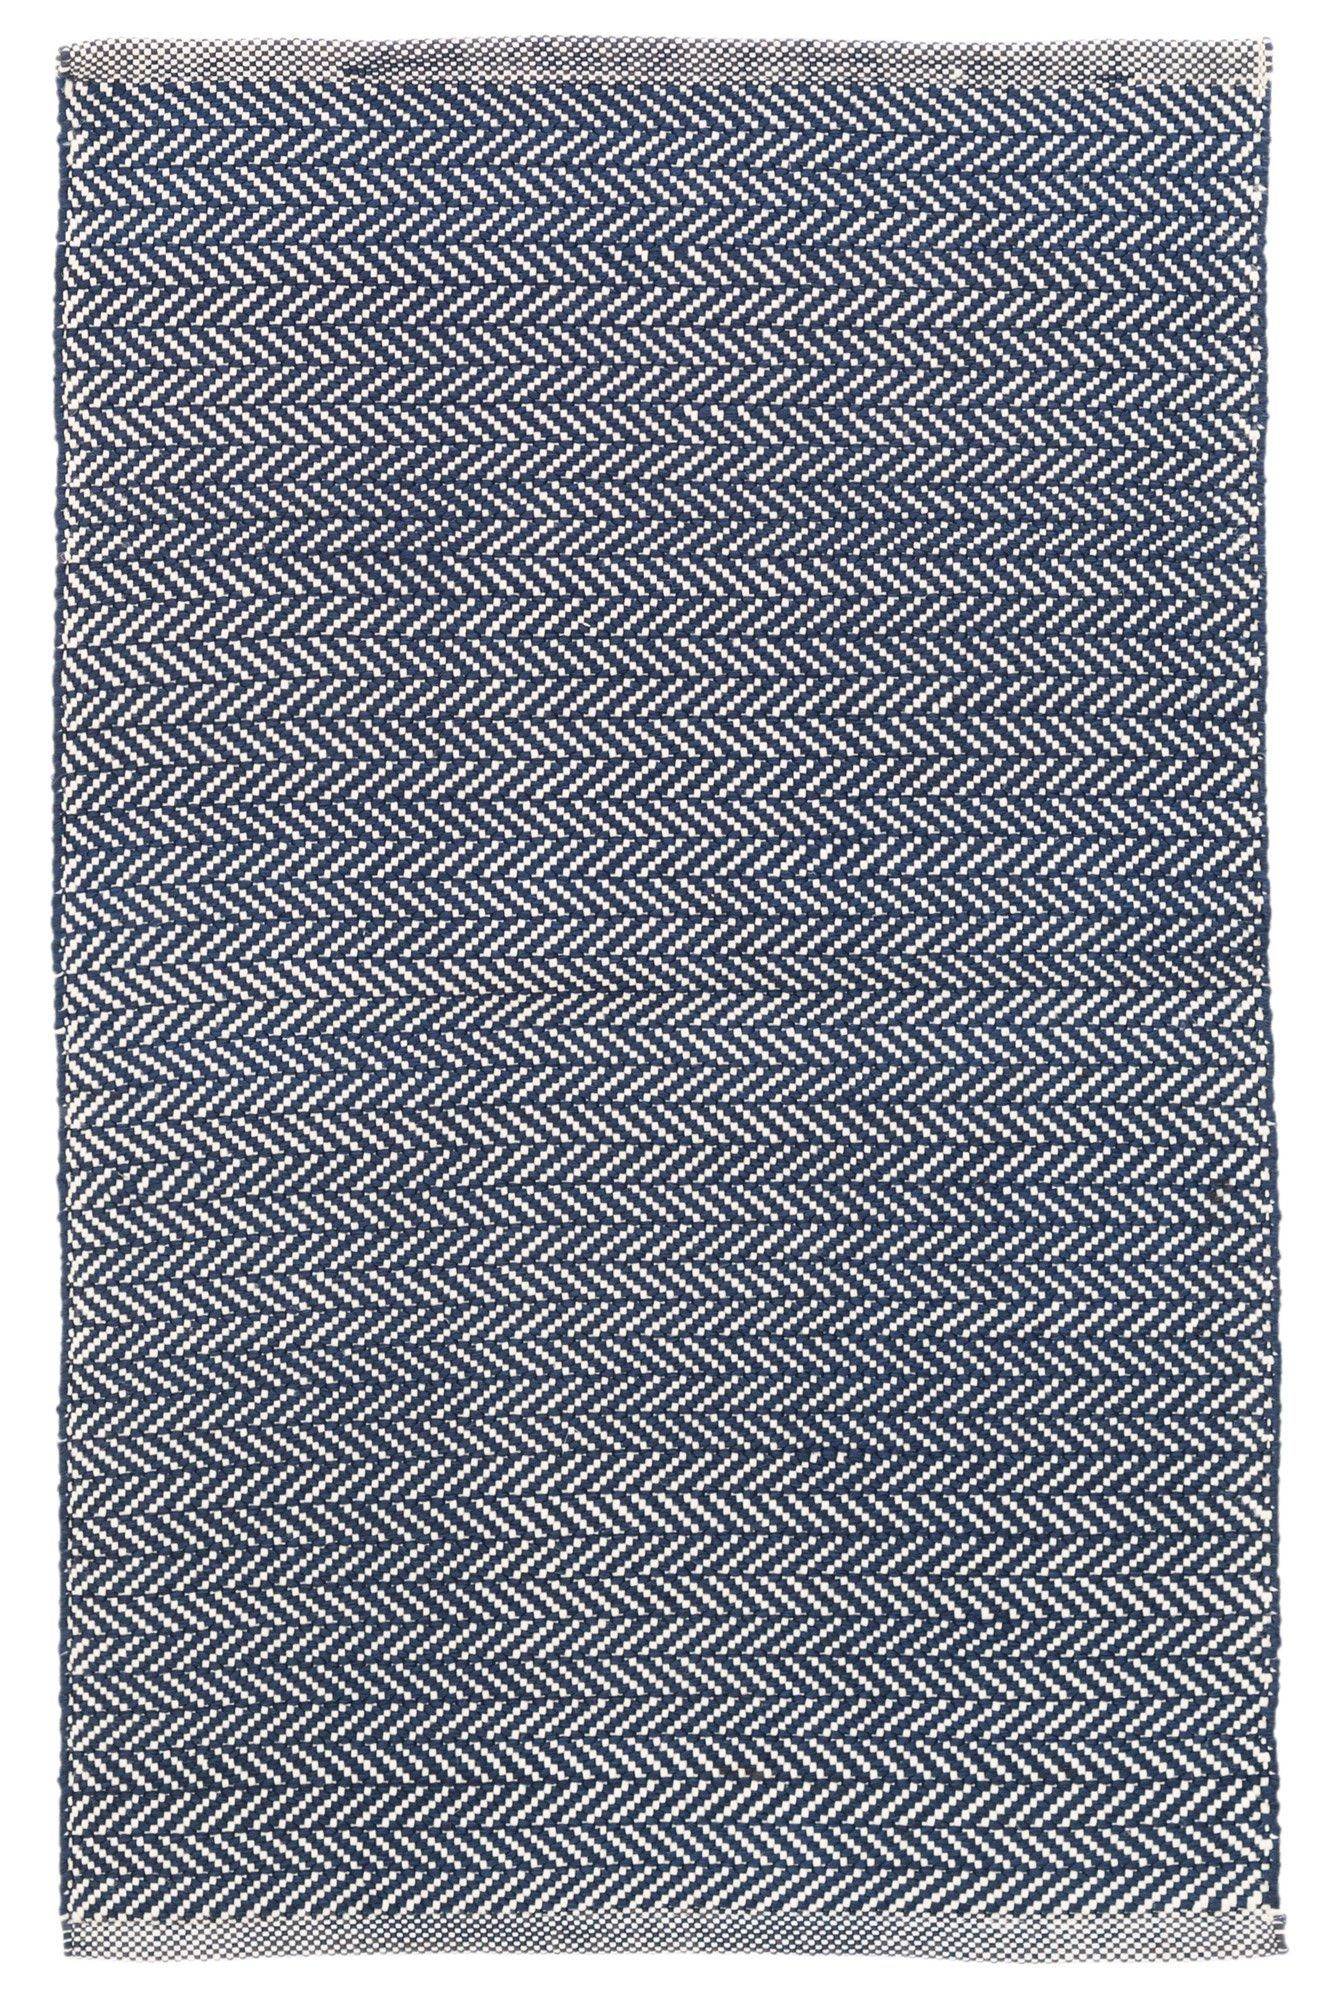 Product type area rug material details polypropylene dimensions rug size 10 x 14 overall product weight 32 lbs rug s